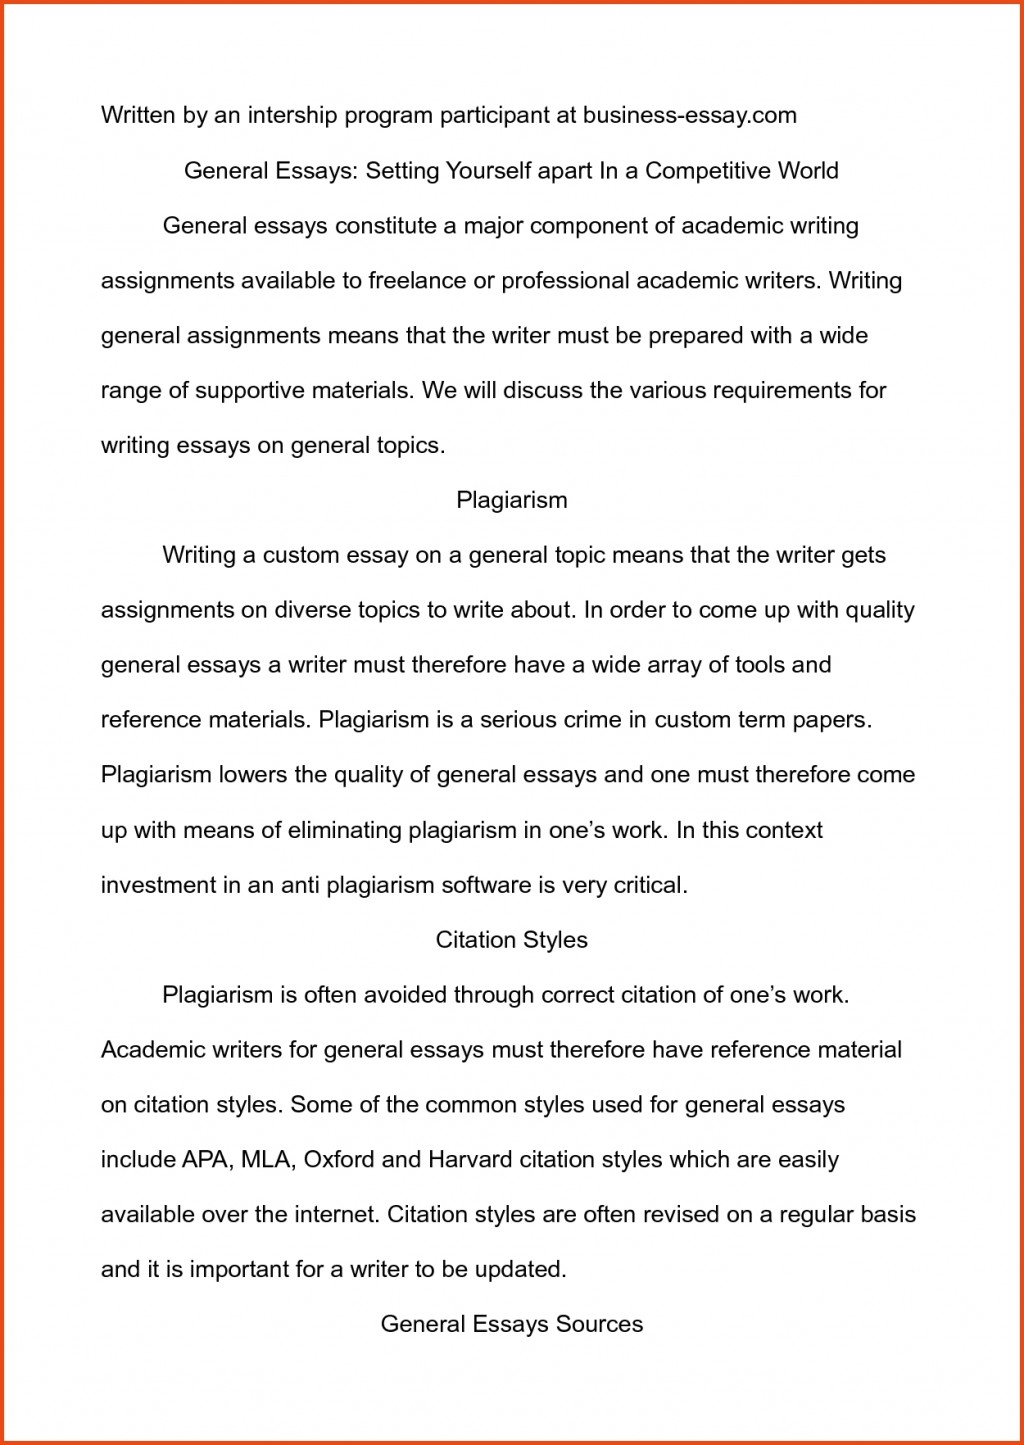 006 Essay Describing Yourself An Historical Architecture Cv On Sample Myself Writing Introducing Essays About Introduce Intended For College Exam Pdf In French Hindi Example Unusual Kids Students Large